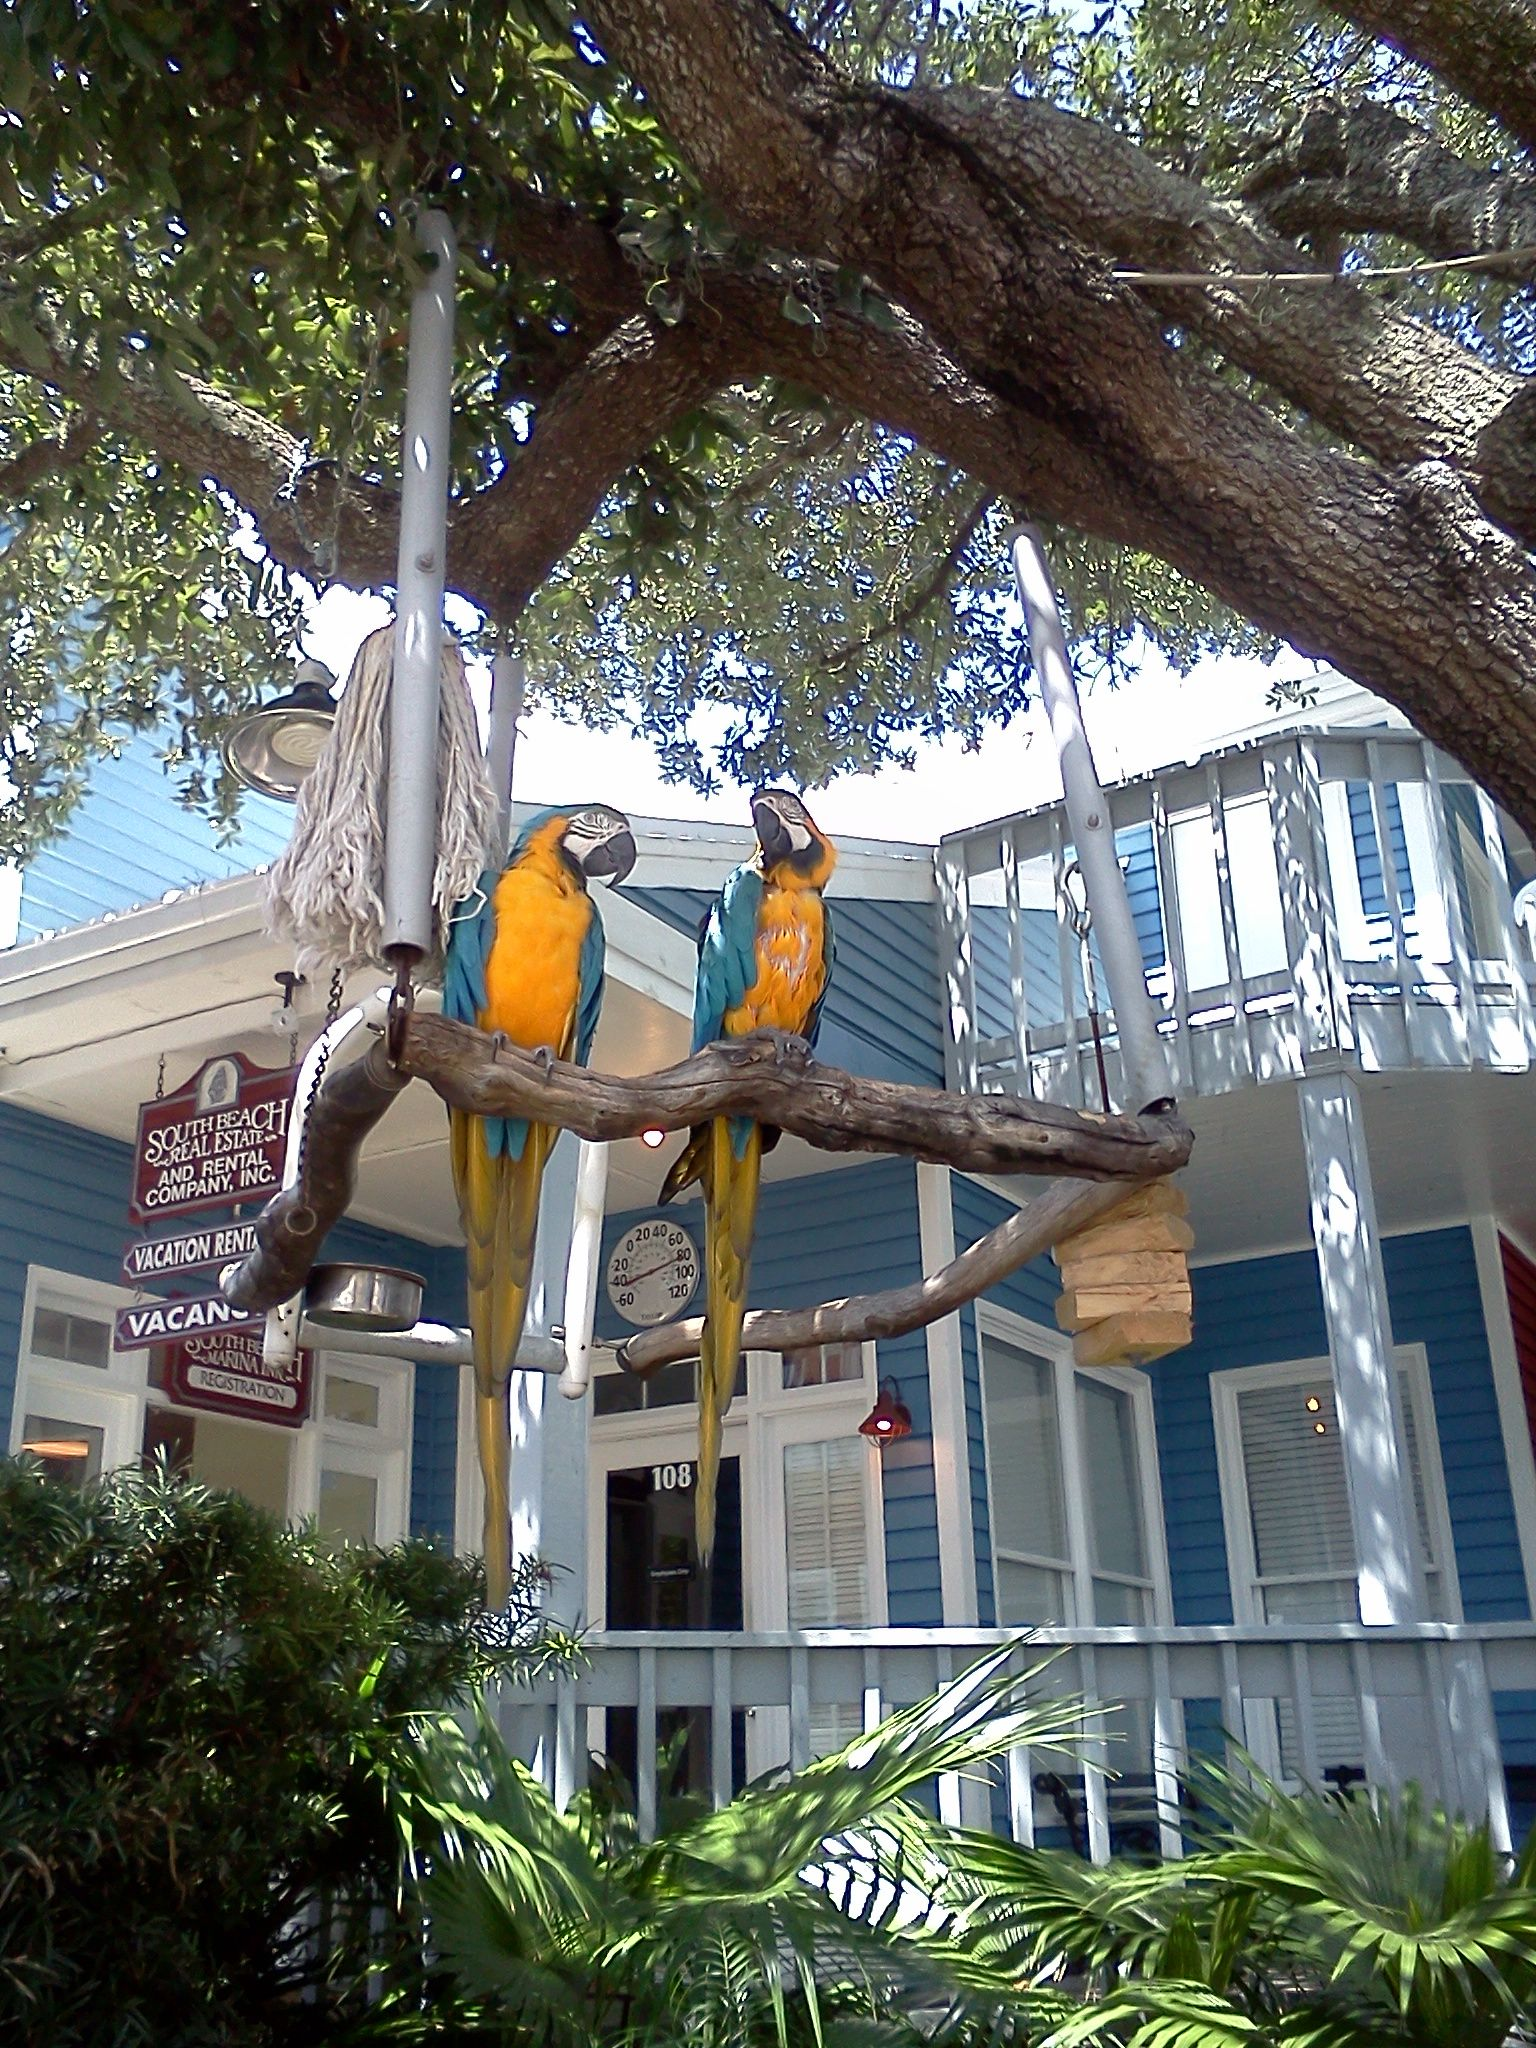 The parrots at the Salty Dog Cafe and Tshirt Shop. Hilton